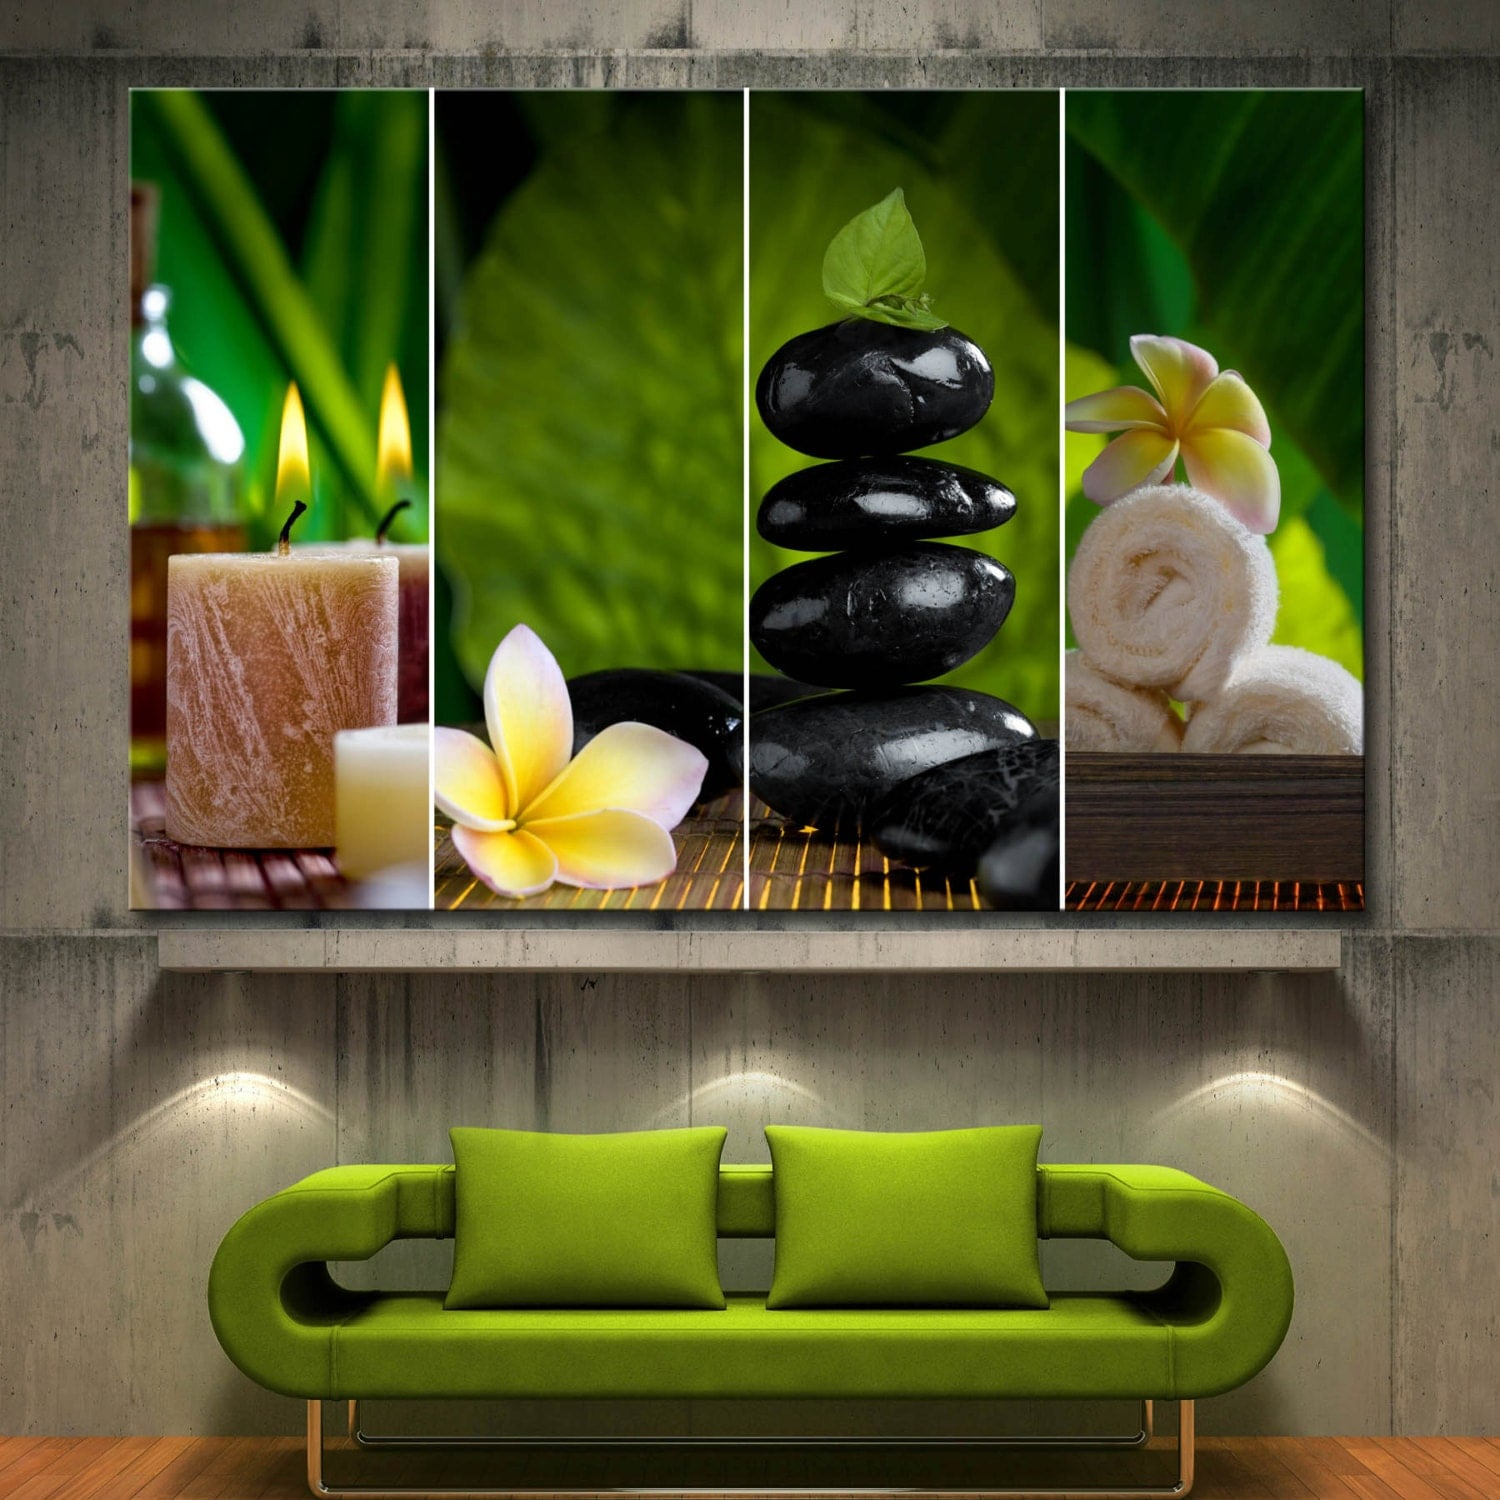 1 Piece Flowers Candle Zen Spa Collage Decor Wall Art Canvas Interiors Inside Ideas Interiors design about Everything [magnanprojects.com]